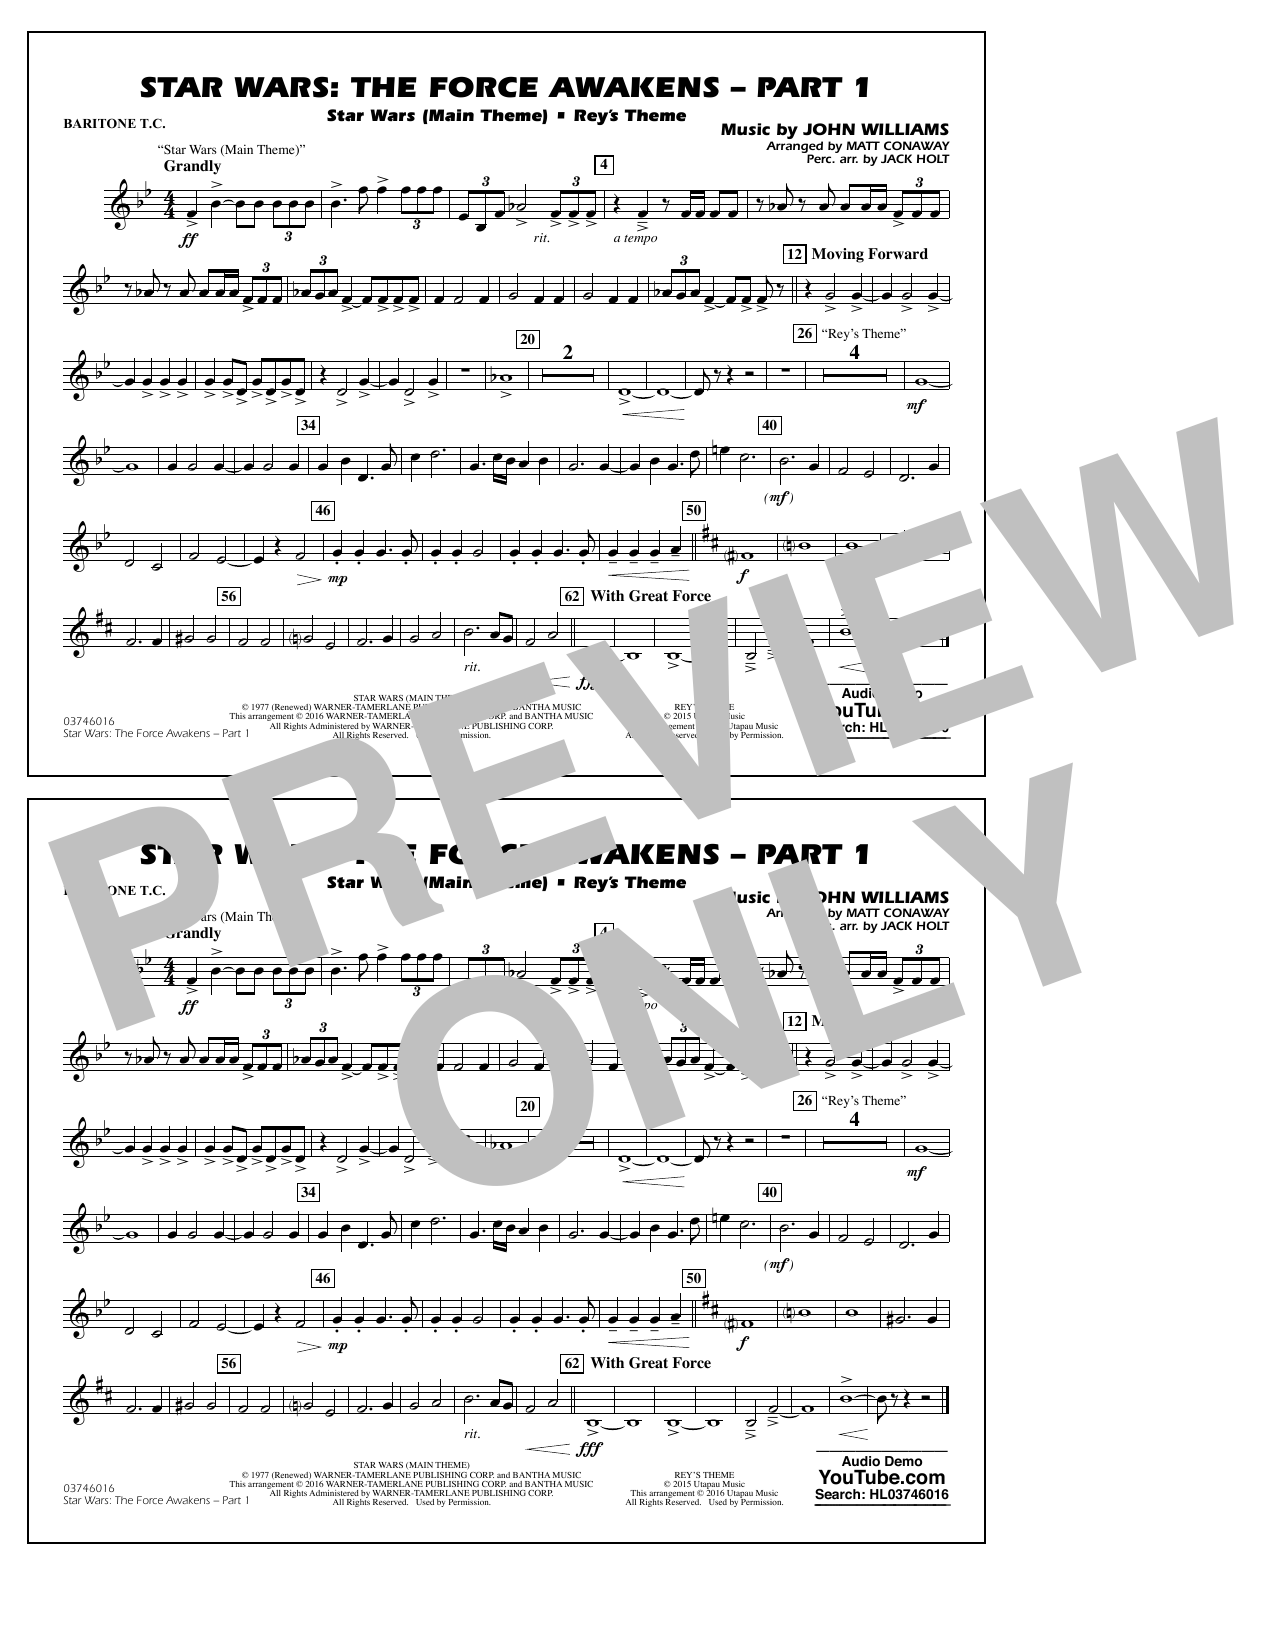 Star Wars: The Force Awakens - Part 1 - Baritone T.C. (Marching Band)